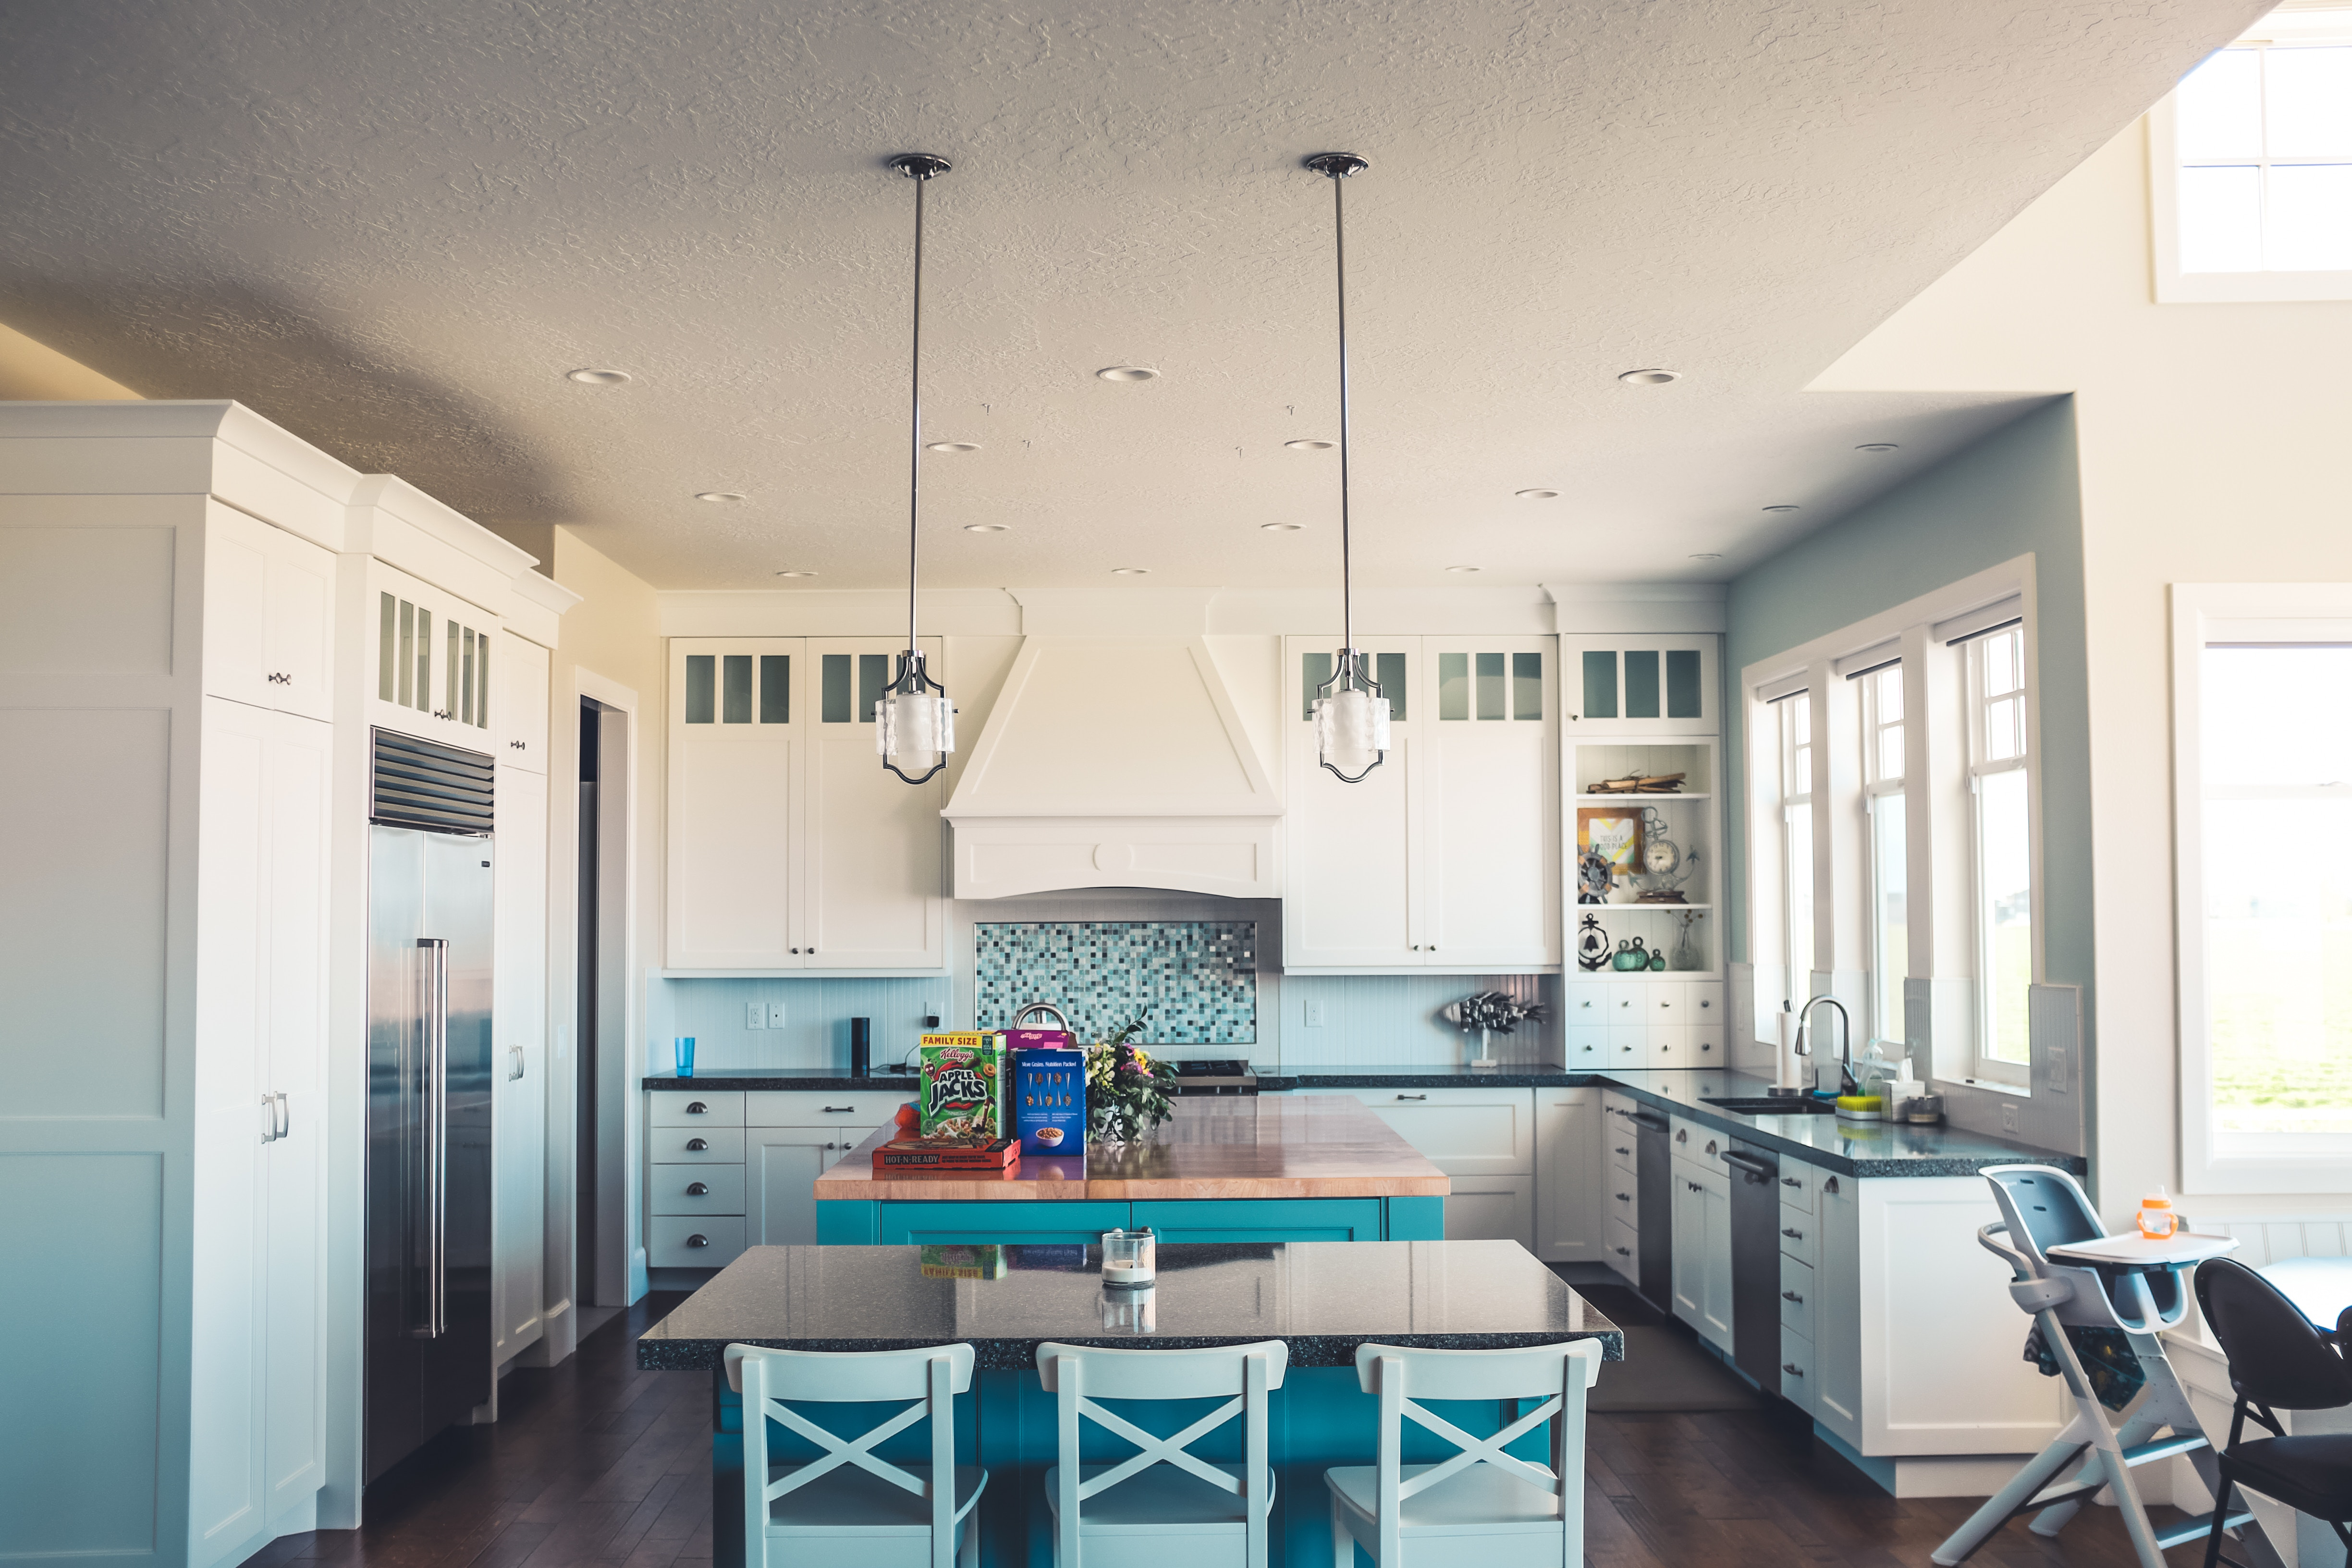 appliance power feeds for a kitchen renovation